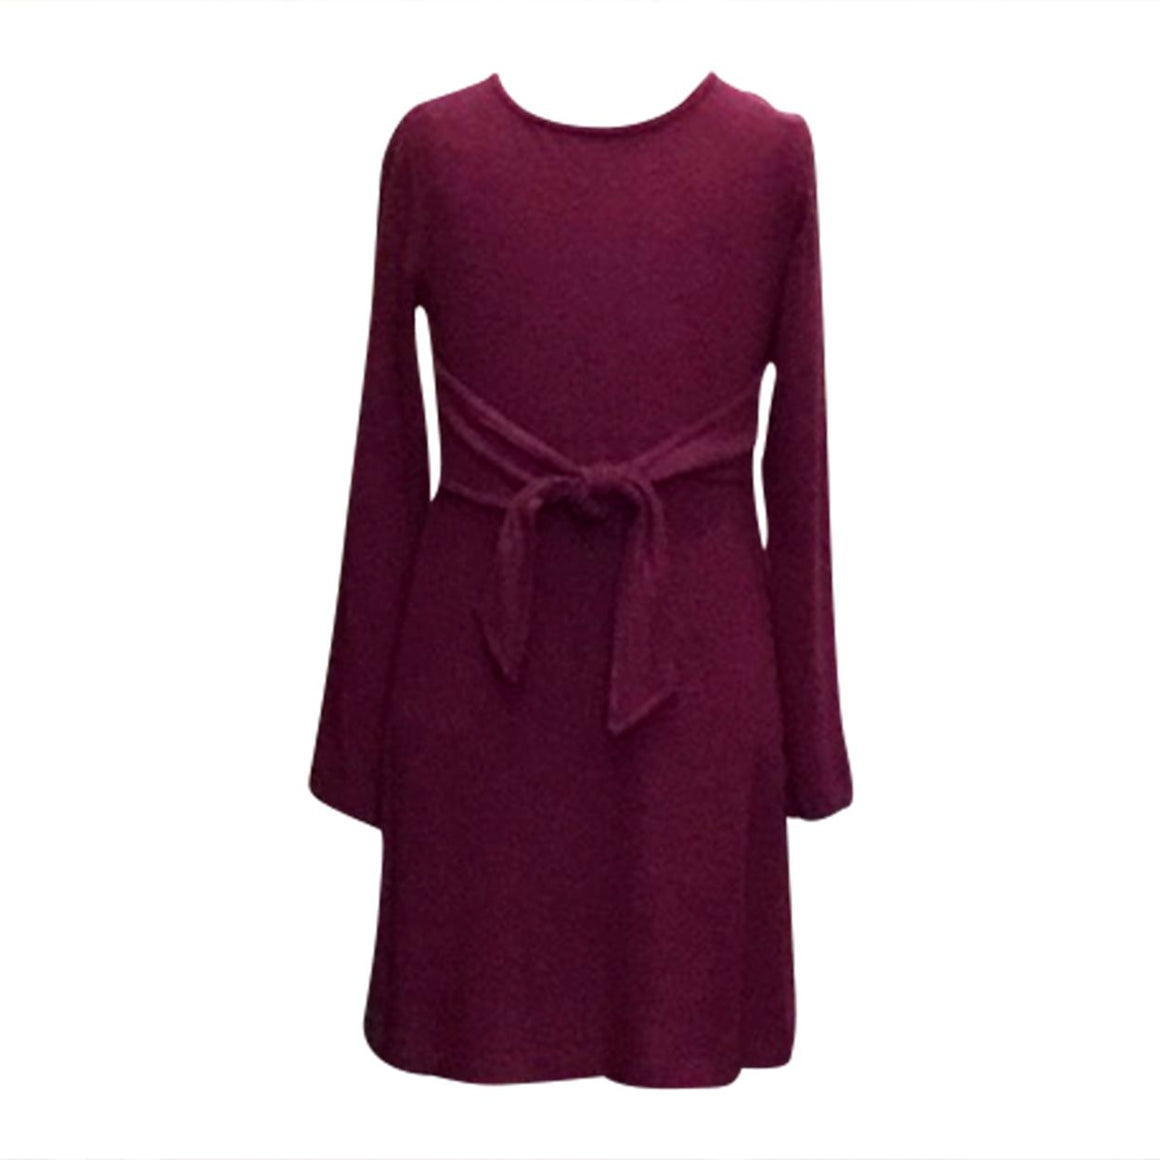 Soft Knit Flare Dress with Front Tie